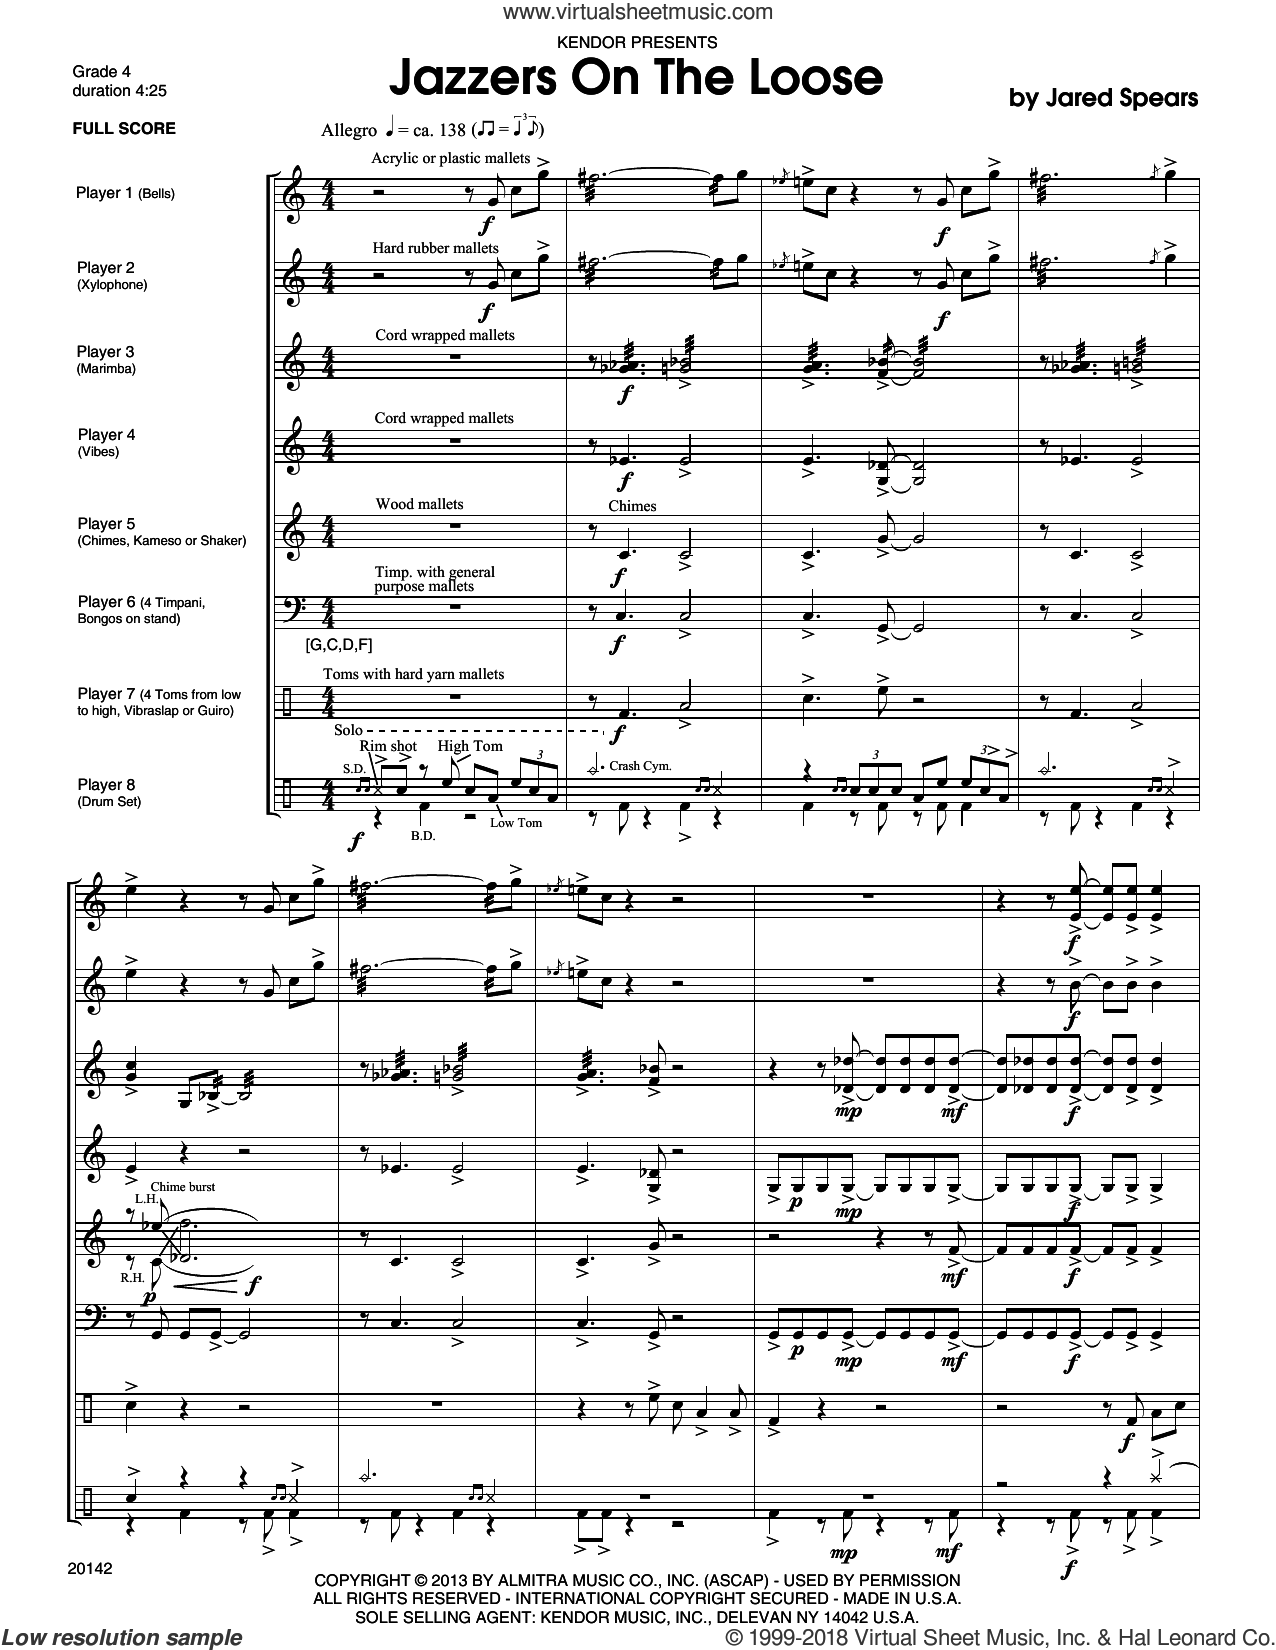 Jazzers On The Loose sheet music for percussions (full score) by Jared Spears